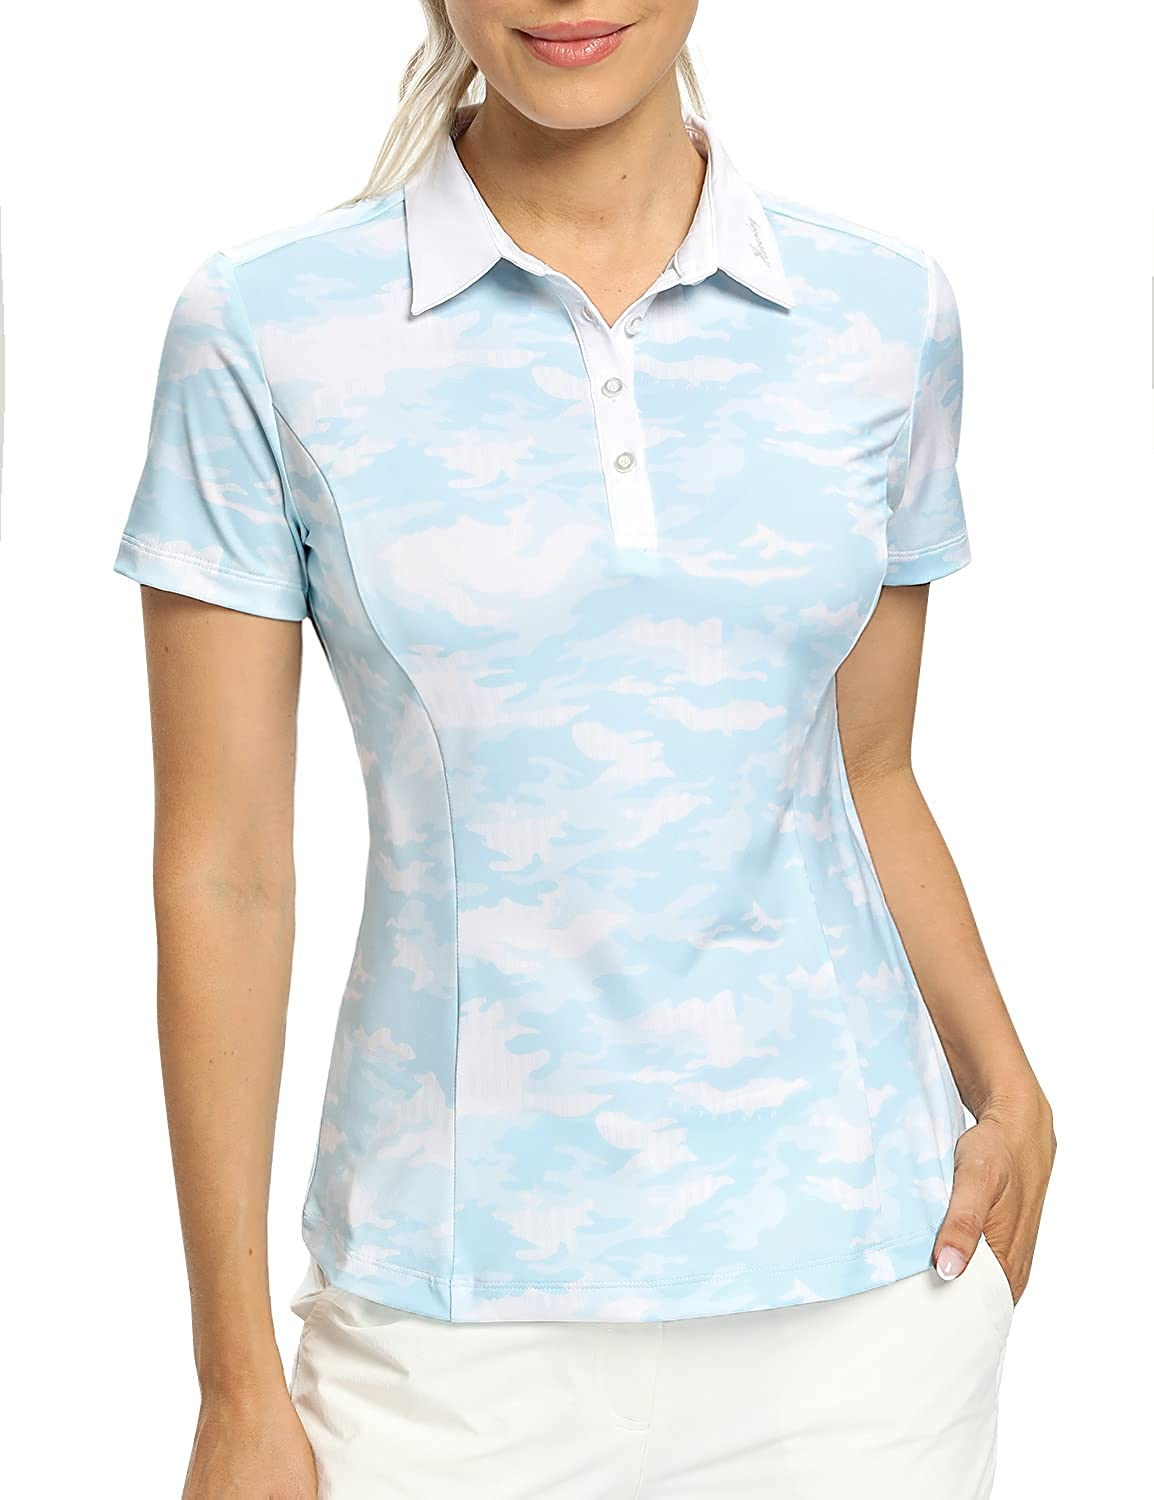 Hiverlay Women's Golf Polo Shirts Max 47% OFF Women Camo Sli Limited price for